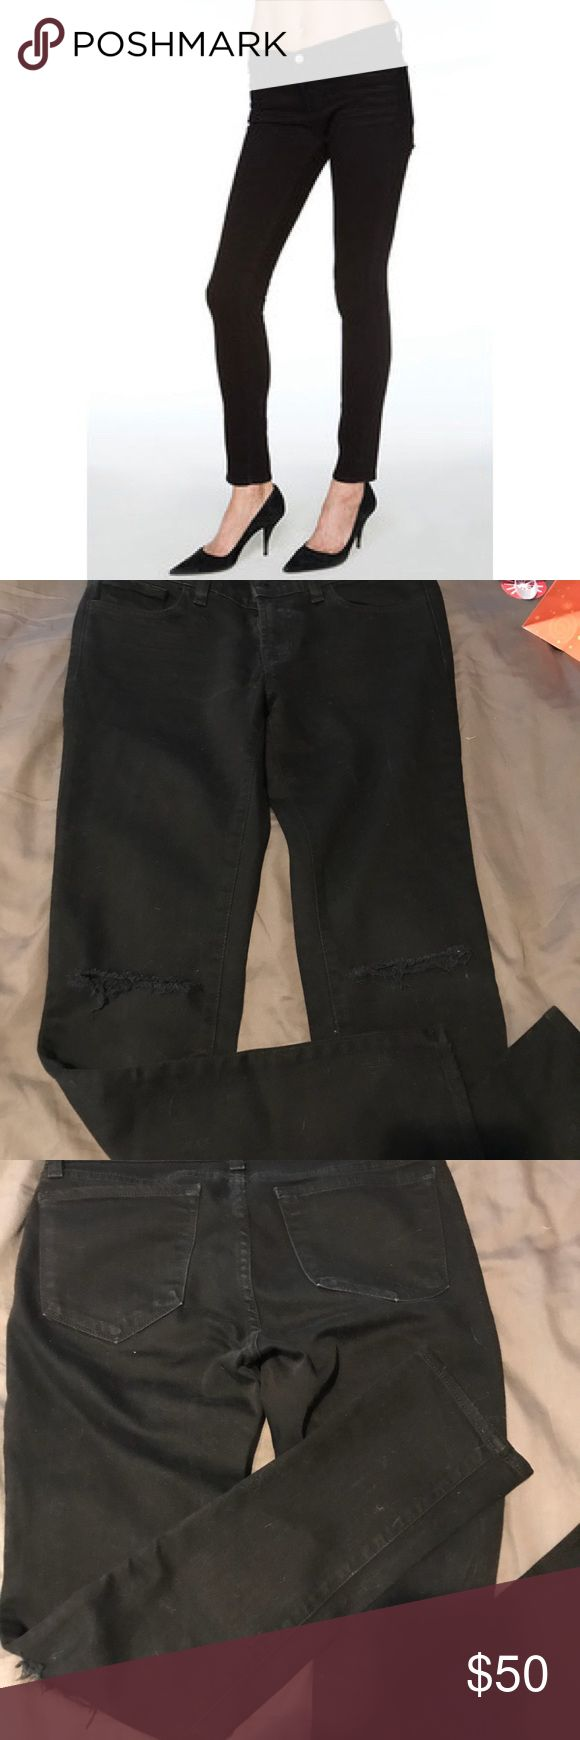 """J Brand jeans style 941 in Jett with custom rips Worn about 2 time, until my butt grew and now I can't fit them :( I had custom rips added to the knees. Being 5'2"""" makes it hard to find jeans with rips on the knees and not shins lol. So if you're petit like me these will look hot! J Brand Jeans Skinny"""